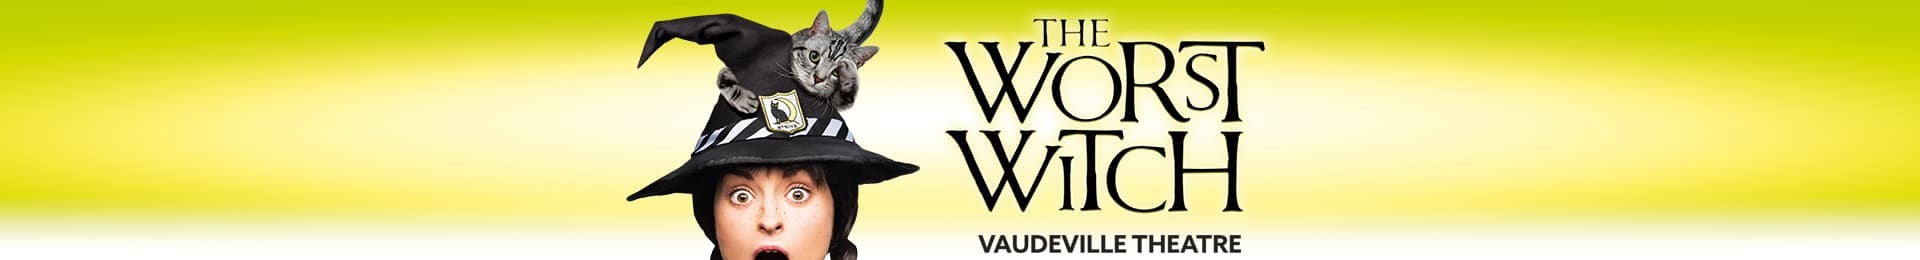 The Worst Witch banner image